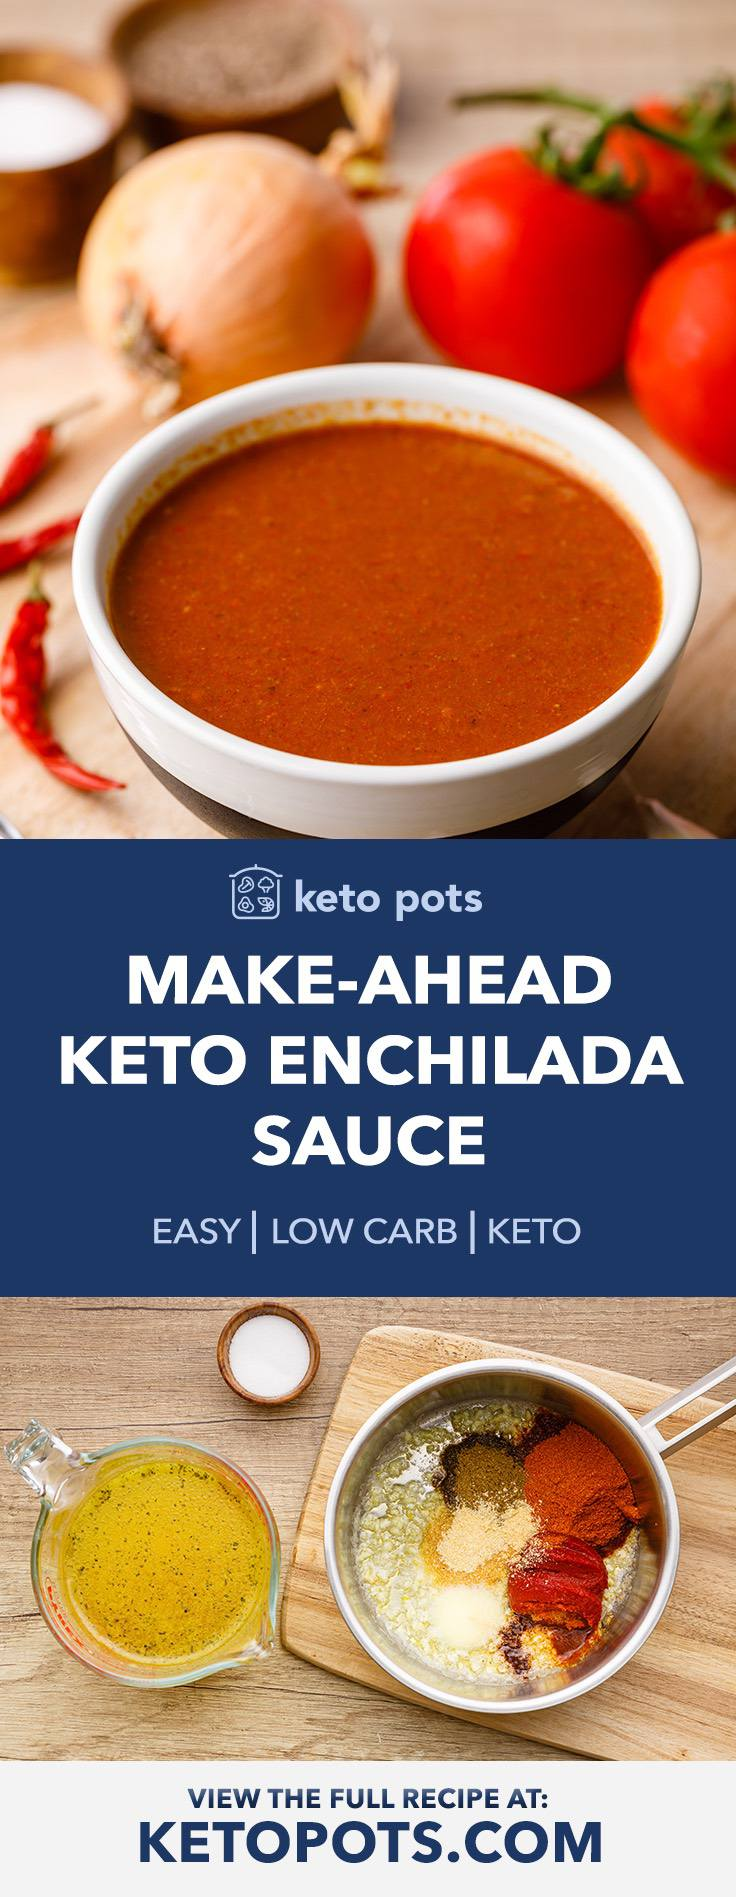 Make-Ahead Keto Enchilada Sauce for Easy Mexican Meals